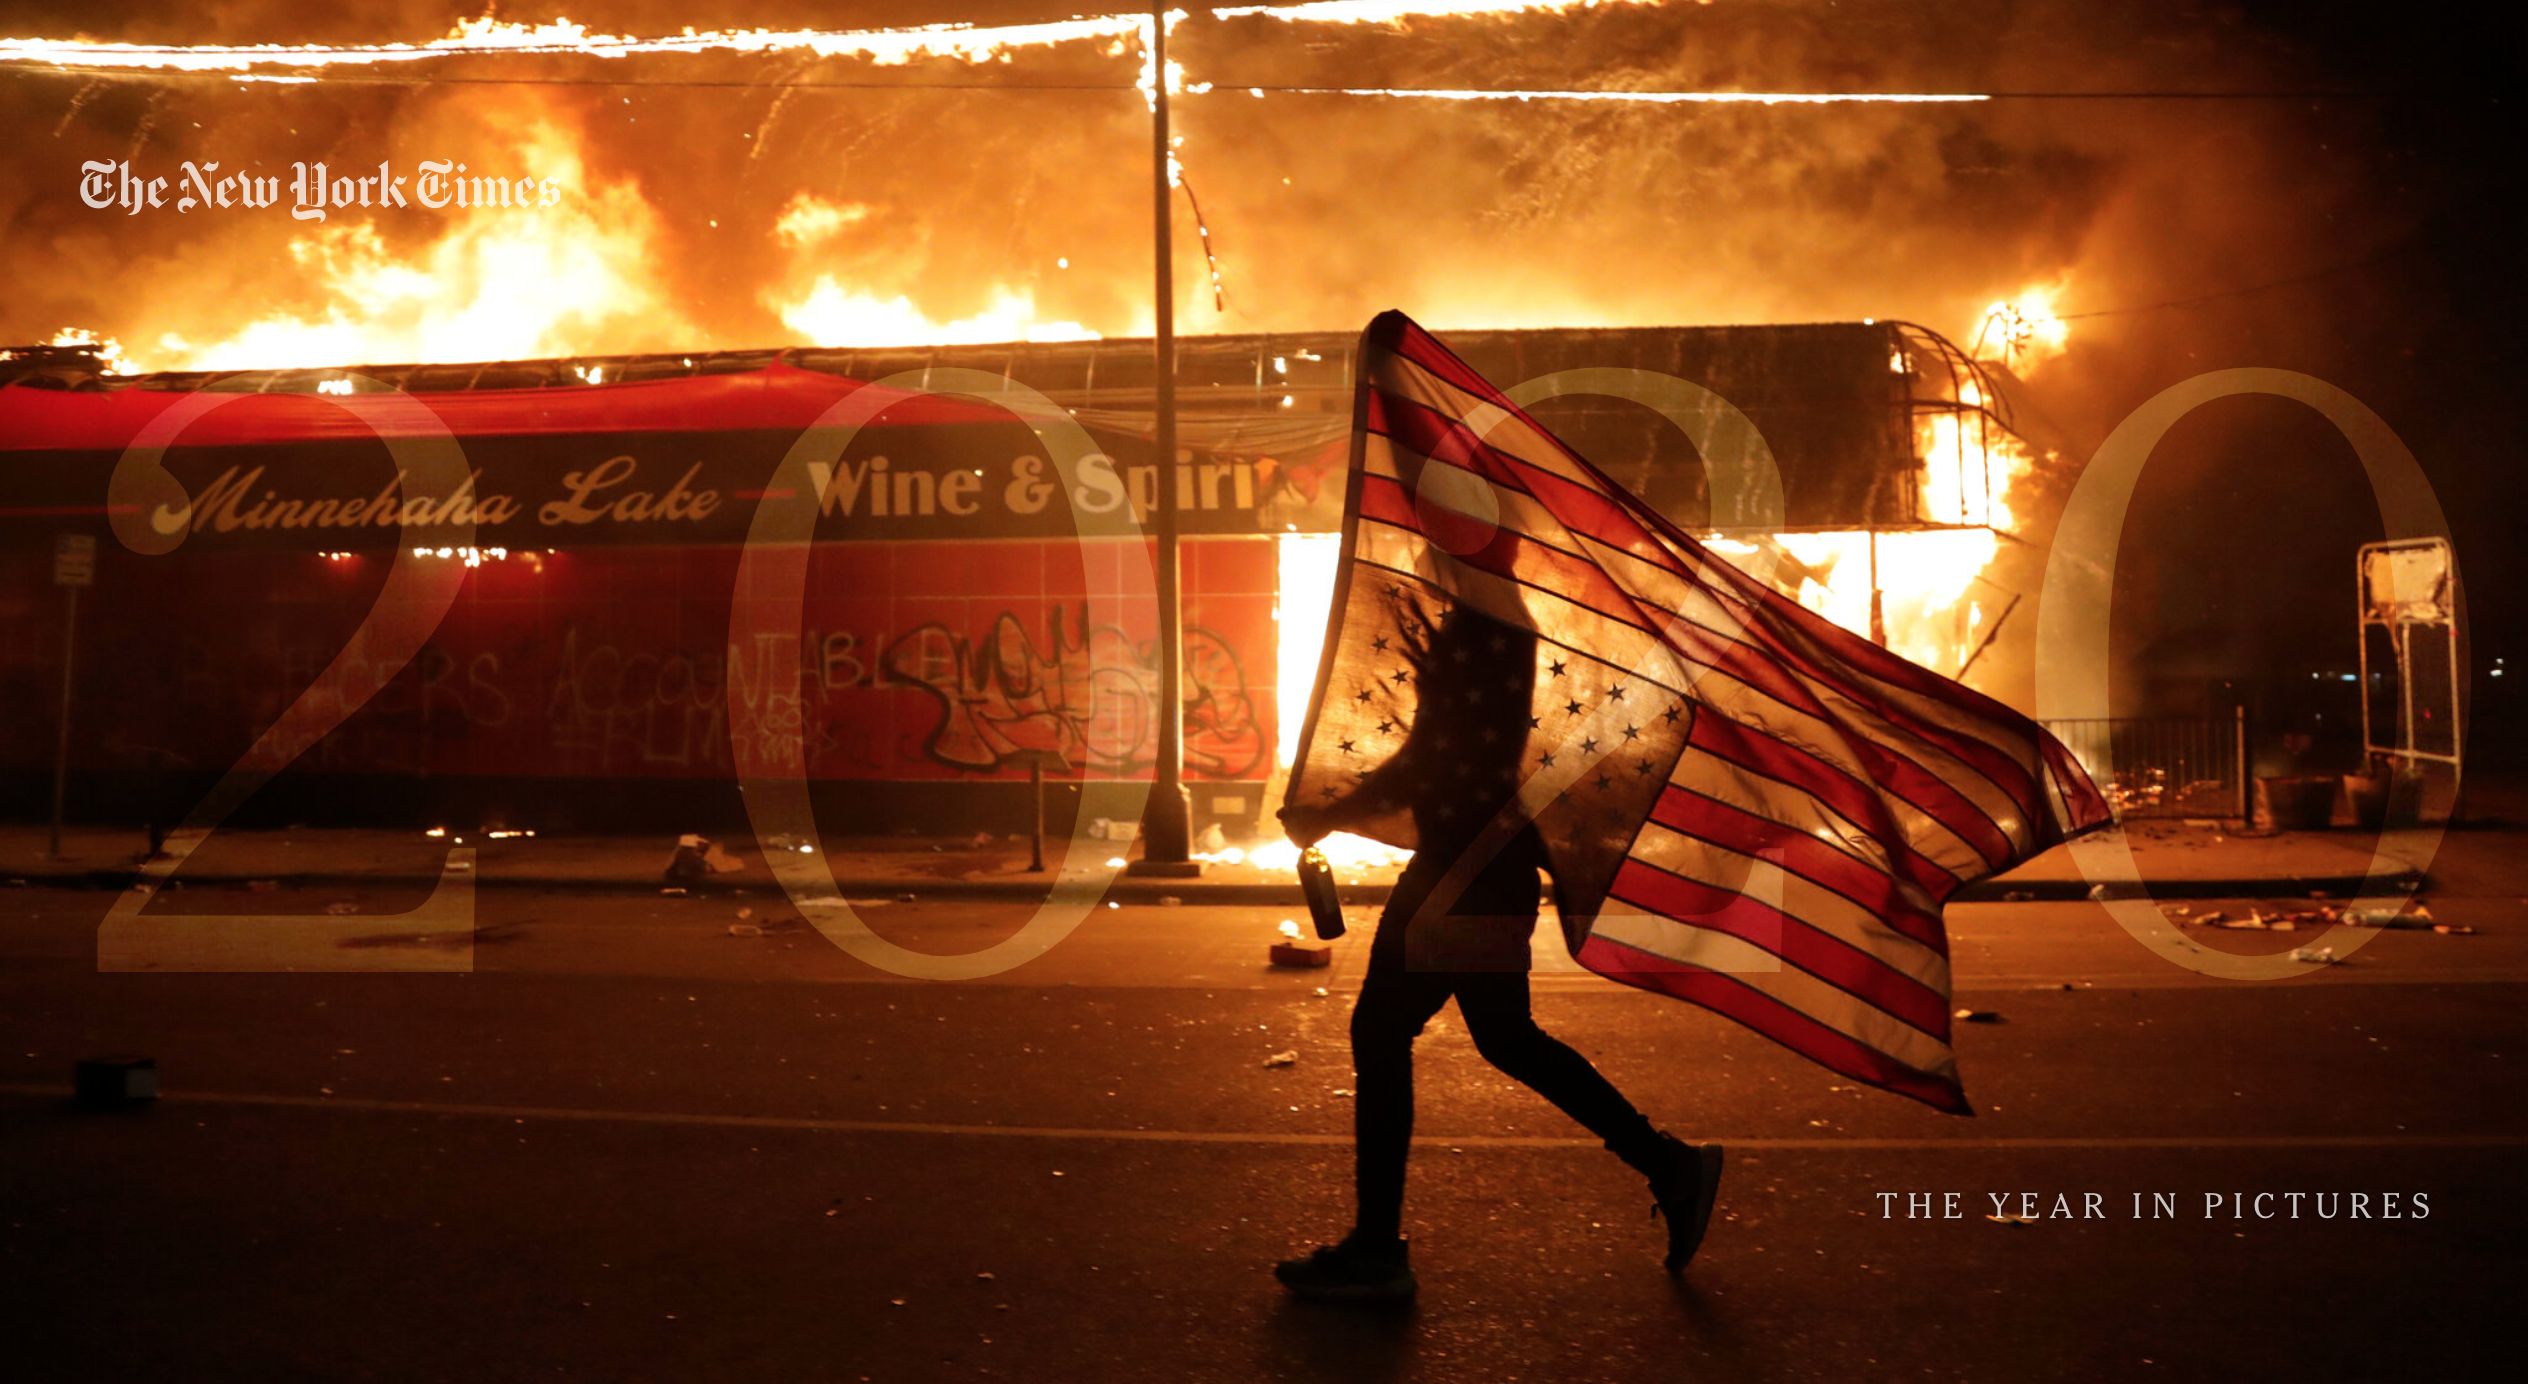 Screenshot of the New York Times 2020 Year in Pictures, showing a person holding an upside-down American flag against the backdrop of a burning building.